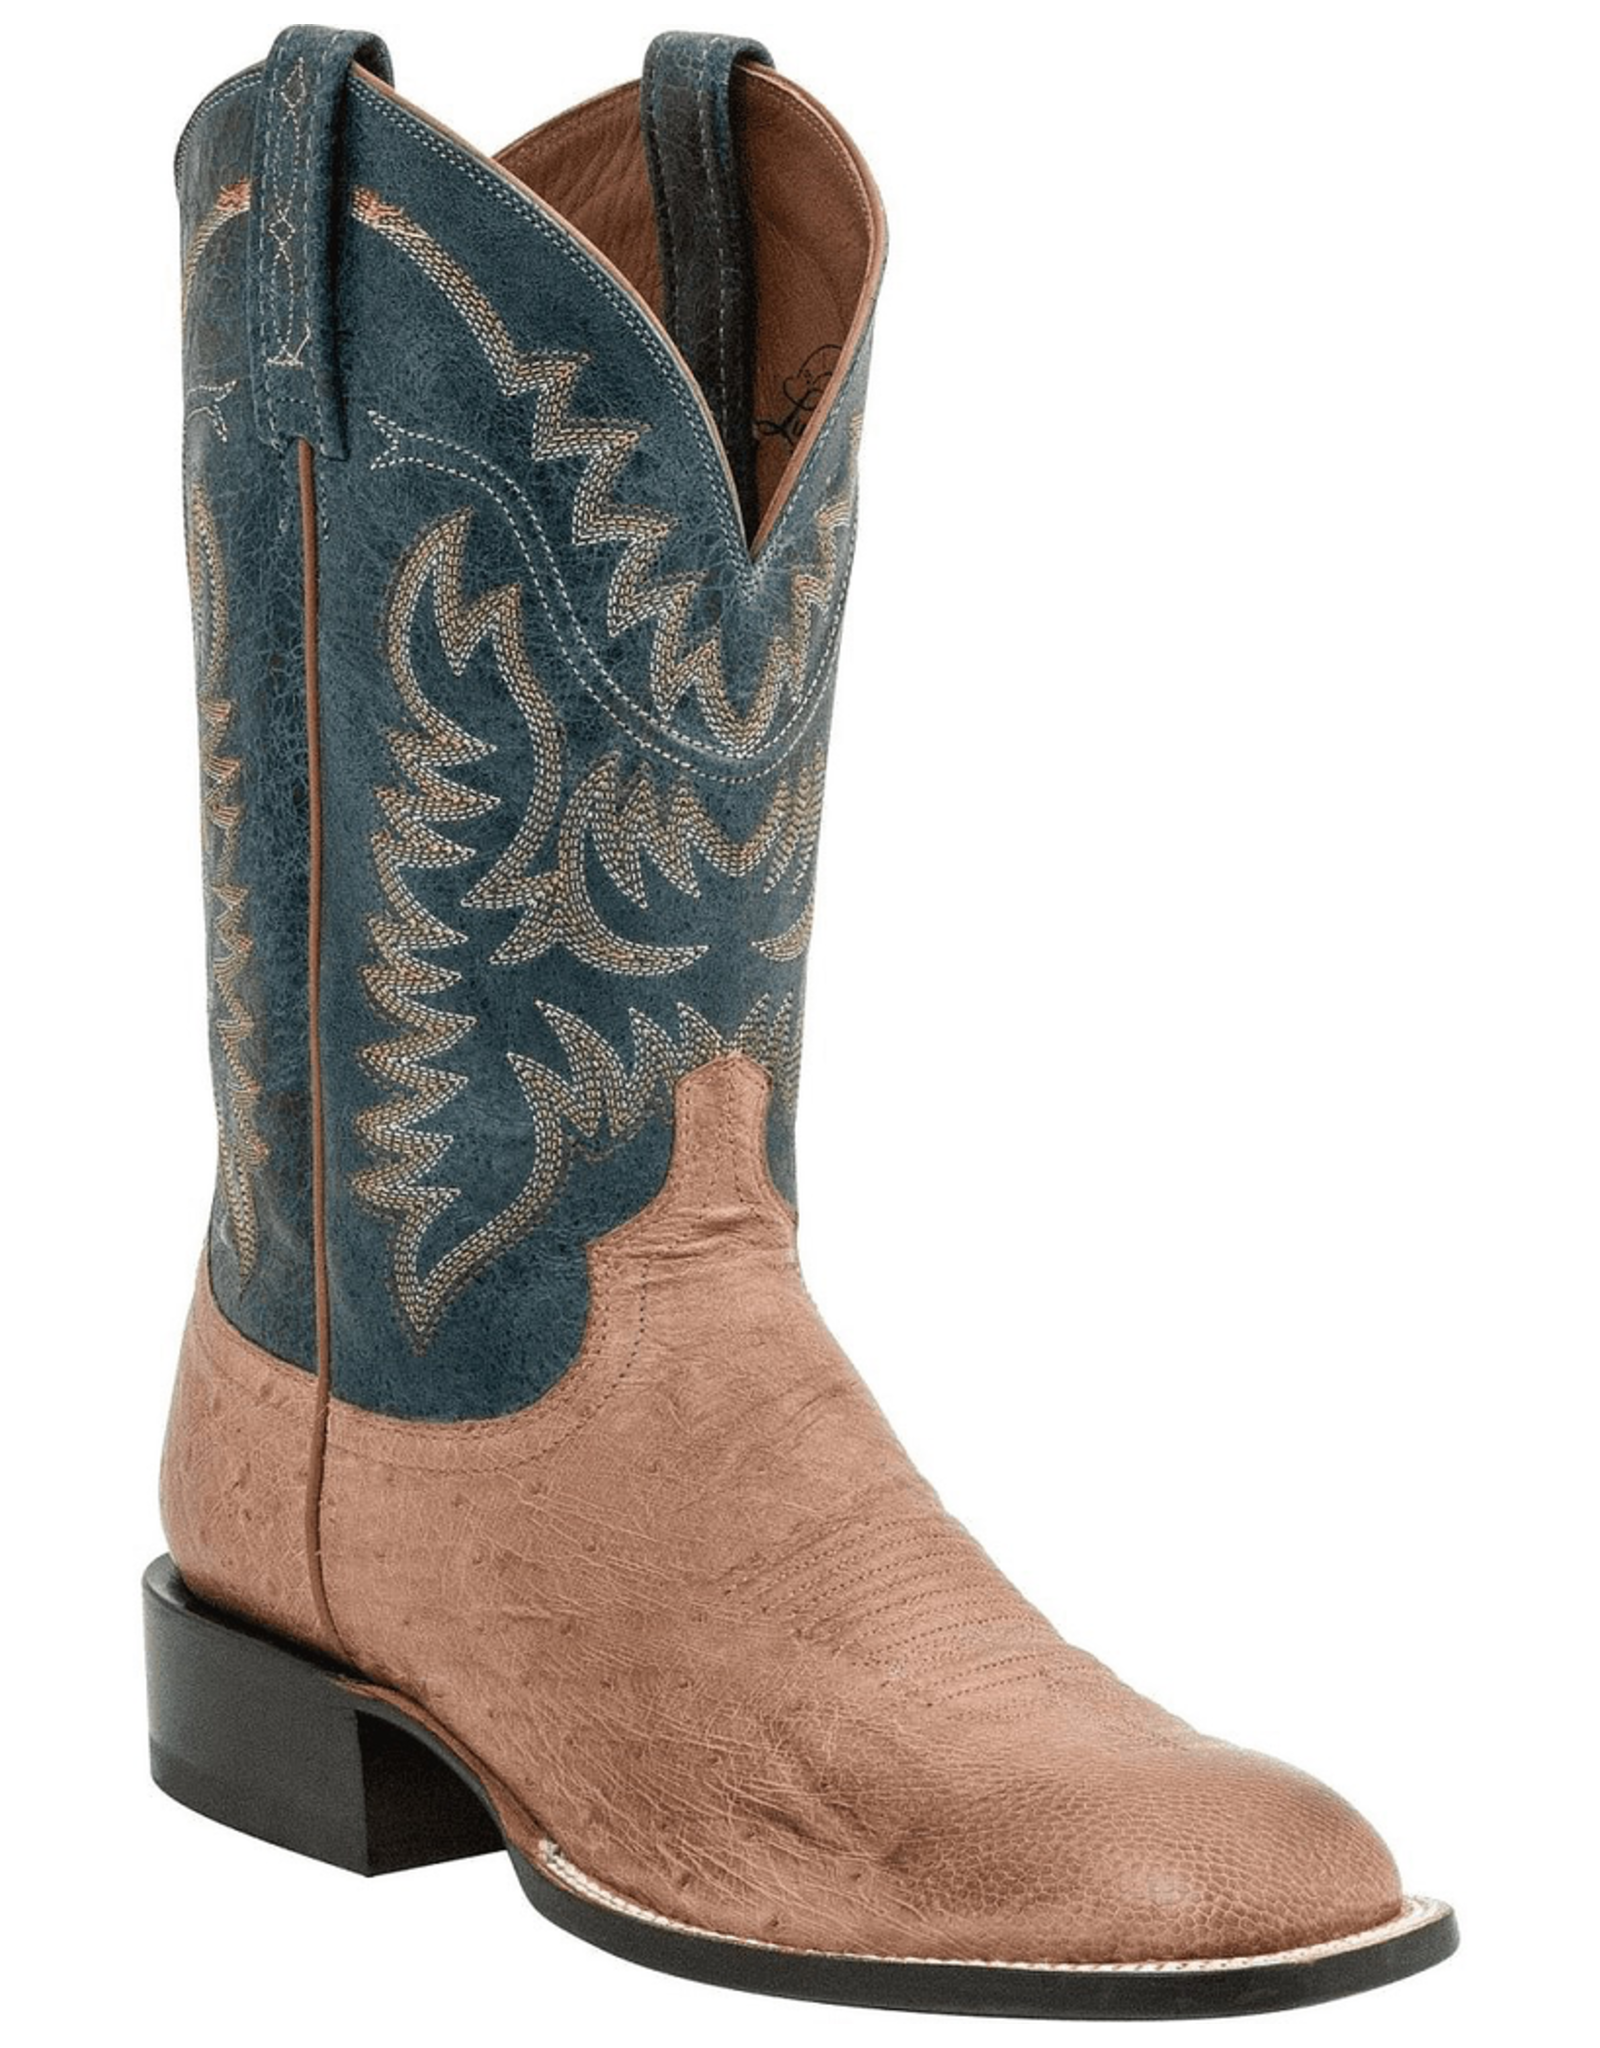 Boots-Men LUCCHESE M2671 9.5 D Tan Smooth Ostritch